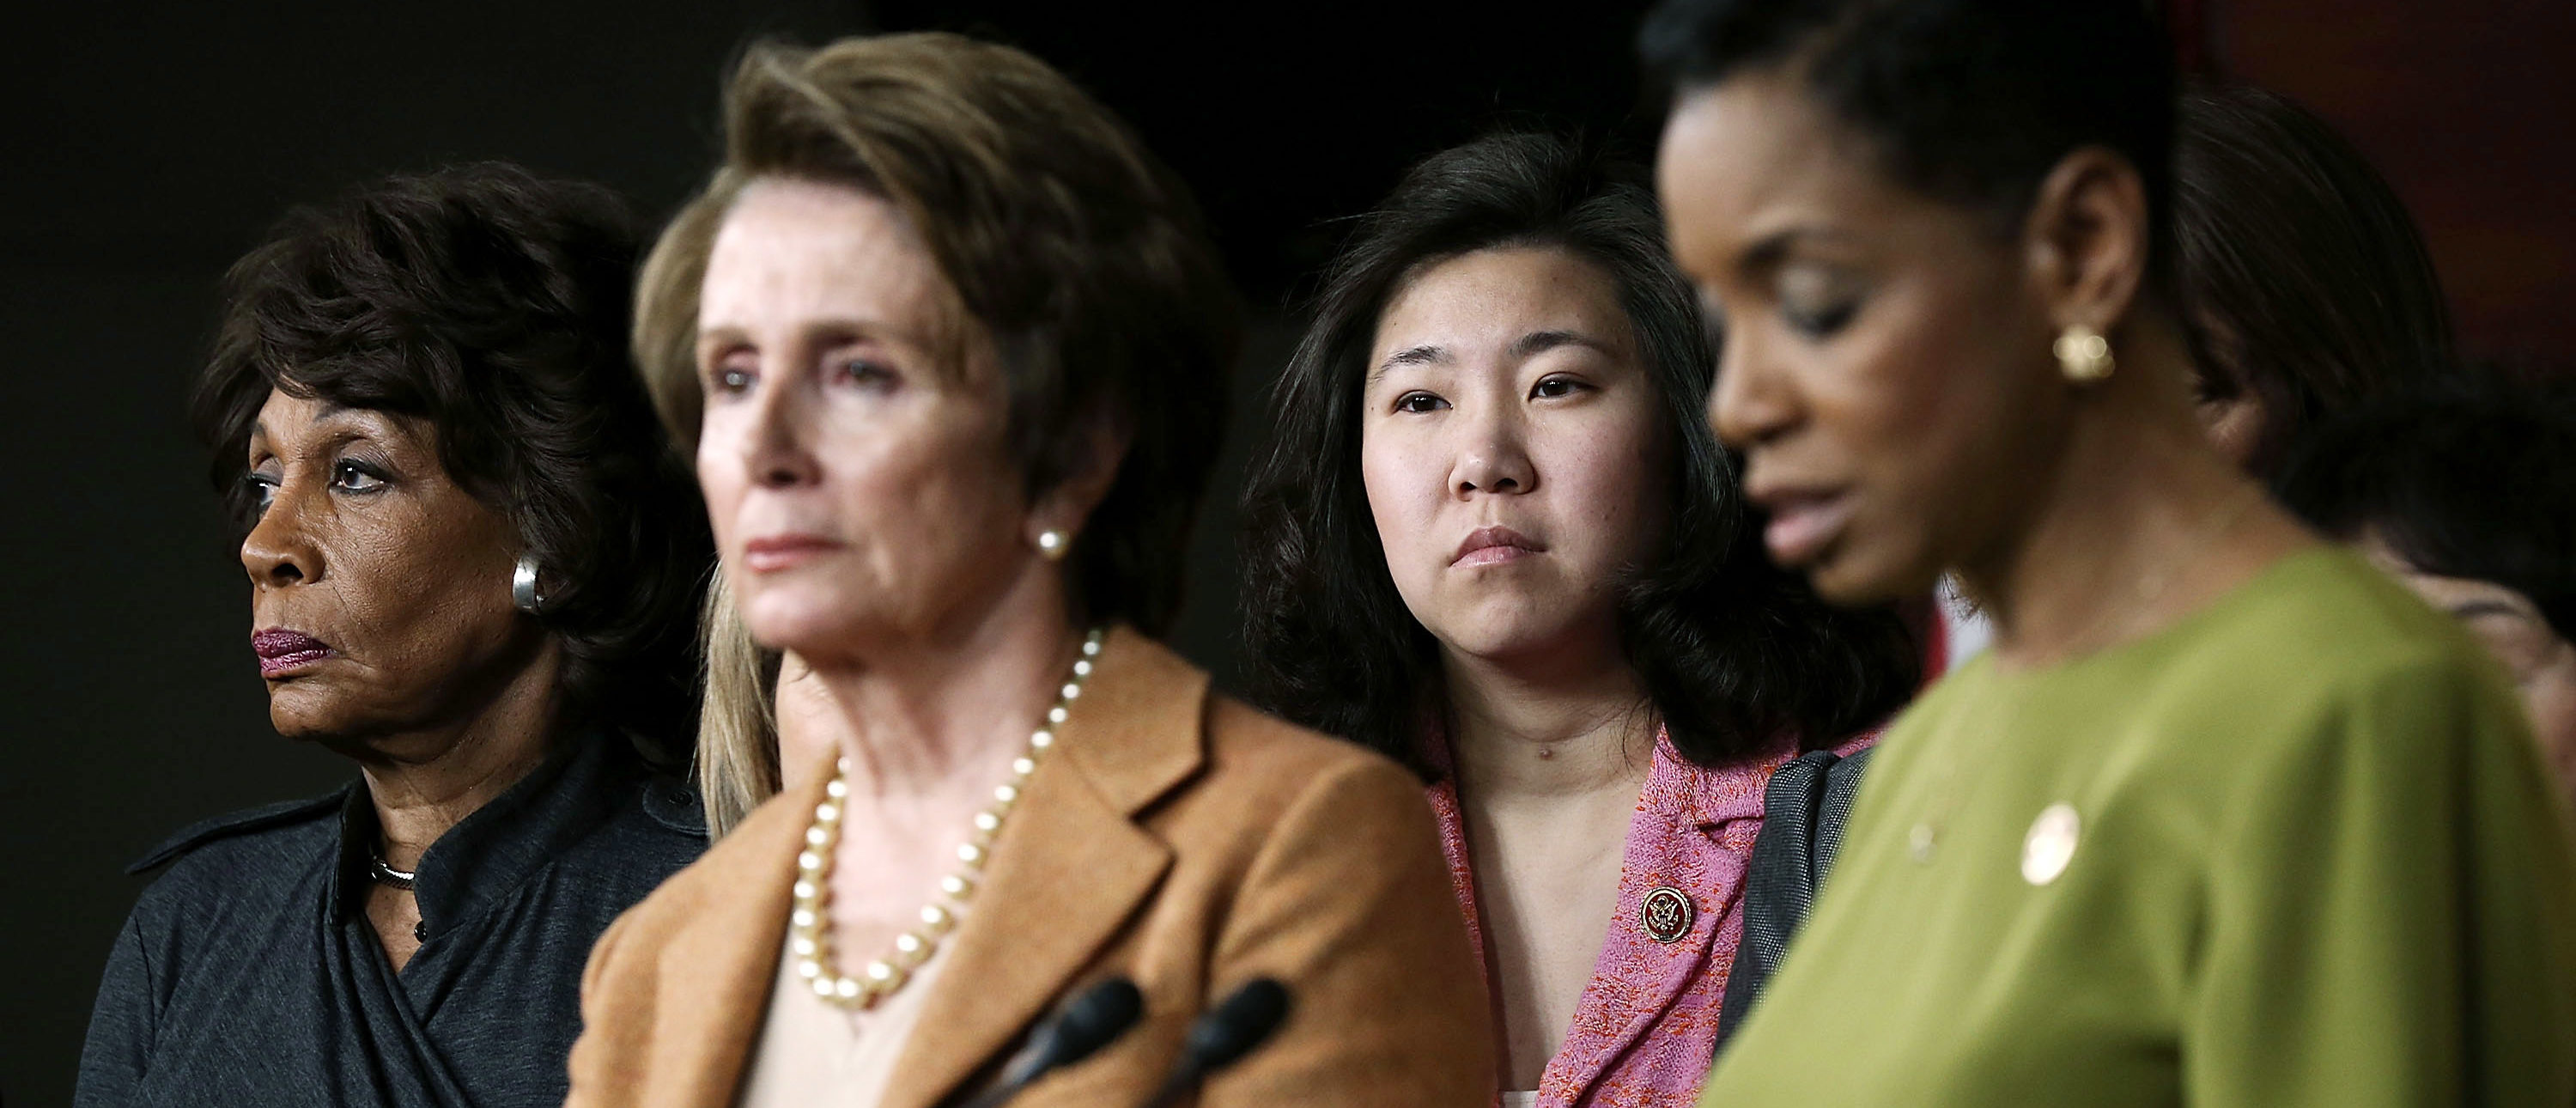 WASHINGTON, DC - FEBRUARY 28: (L-3rd L) U.S. Rep. Maxine Waters (D-CA), House Minority Leader Rep. Nancy Pelosi (D-CA), and Rep. Grace Meng (D-NY) stand during a news conference February 28, 2013 on Capitol Hill in Washington, DC. Pelosi held a news conference to discuss the sequester. (Photo by Alex Wong/Getty Images)